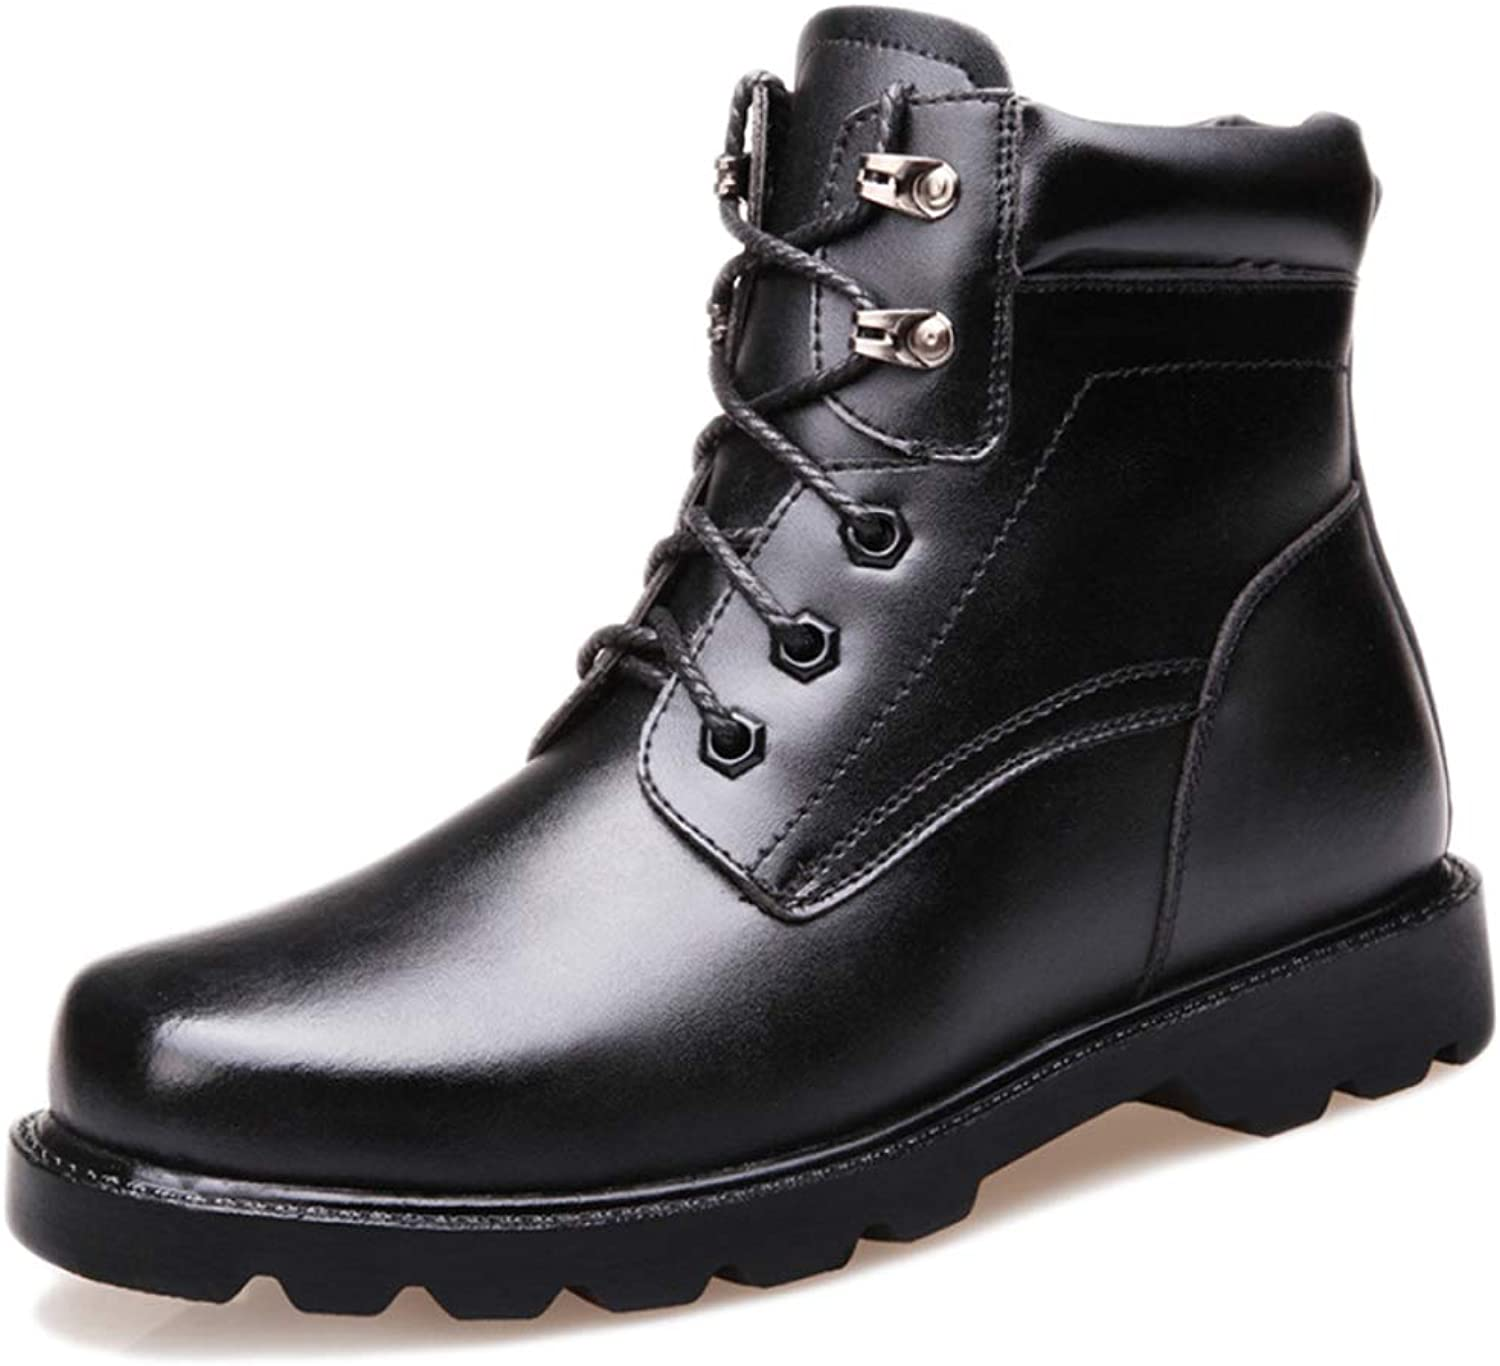 Hope Black Leather Ankle Boots High-top shoes for Men Army Military Lace Up Boots Outdoor Trekking Hikking Work Security Police Boots